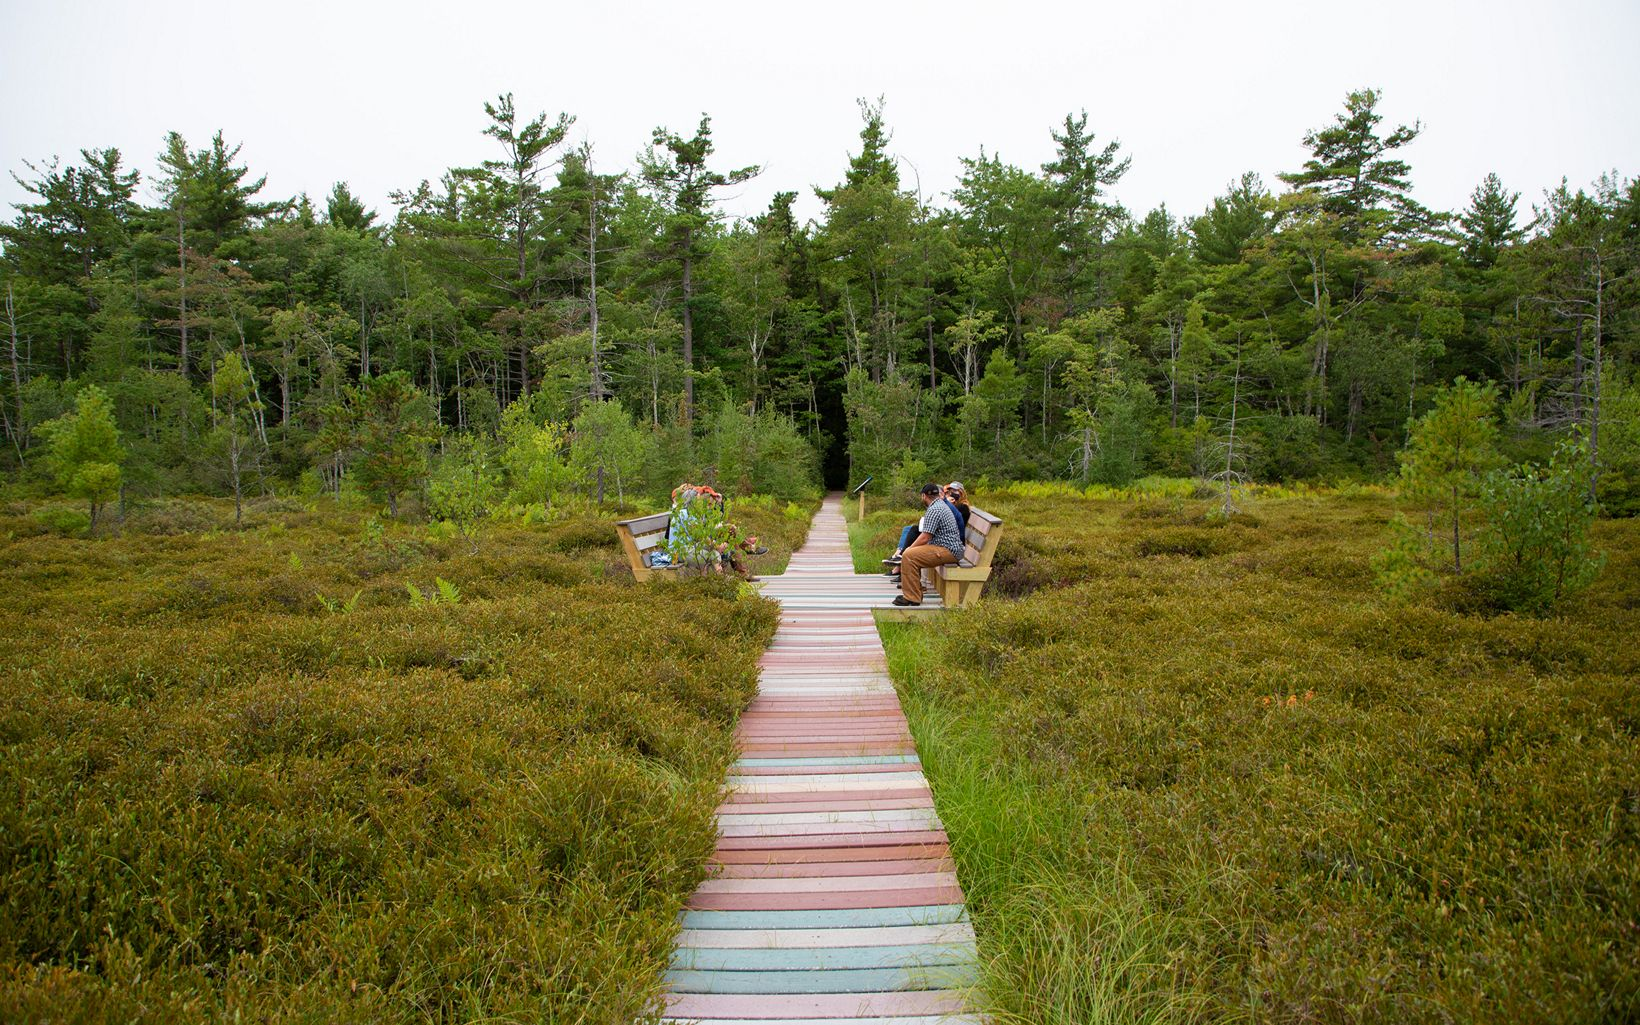 People sit on benches on each side of a boardwalk over green vegetation.